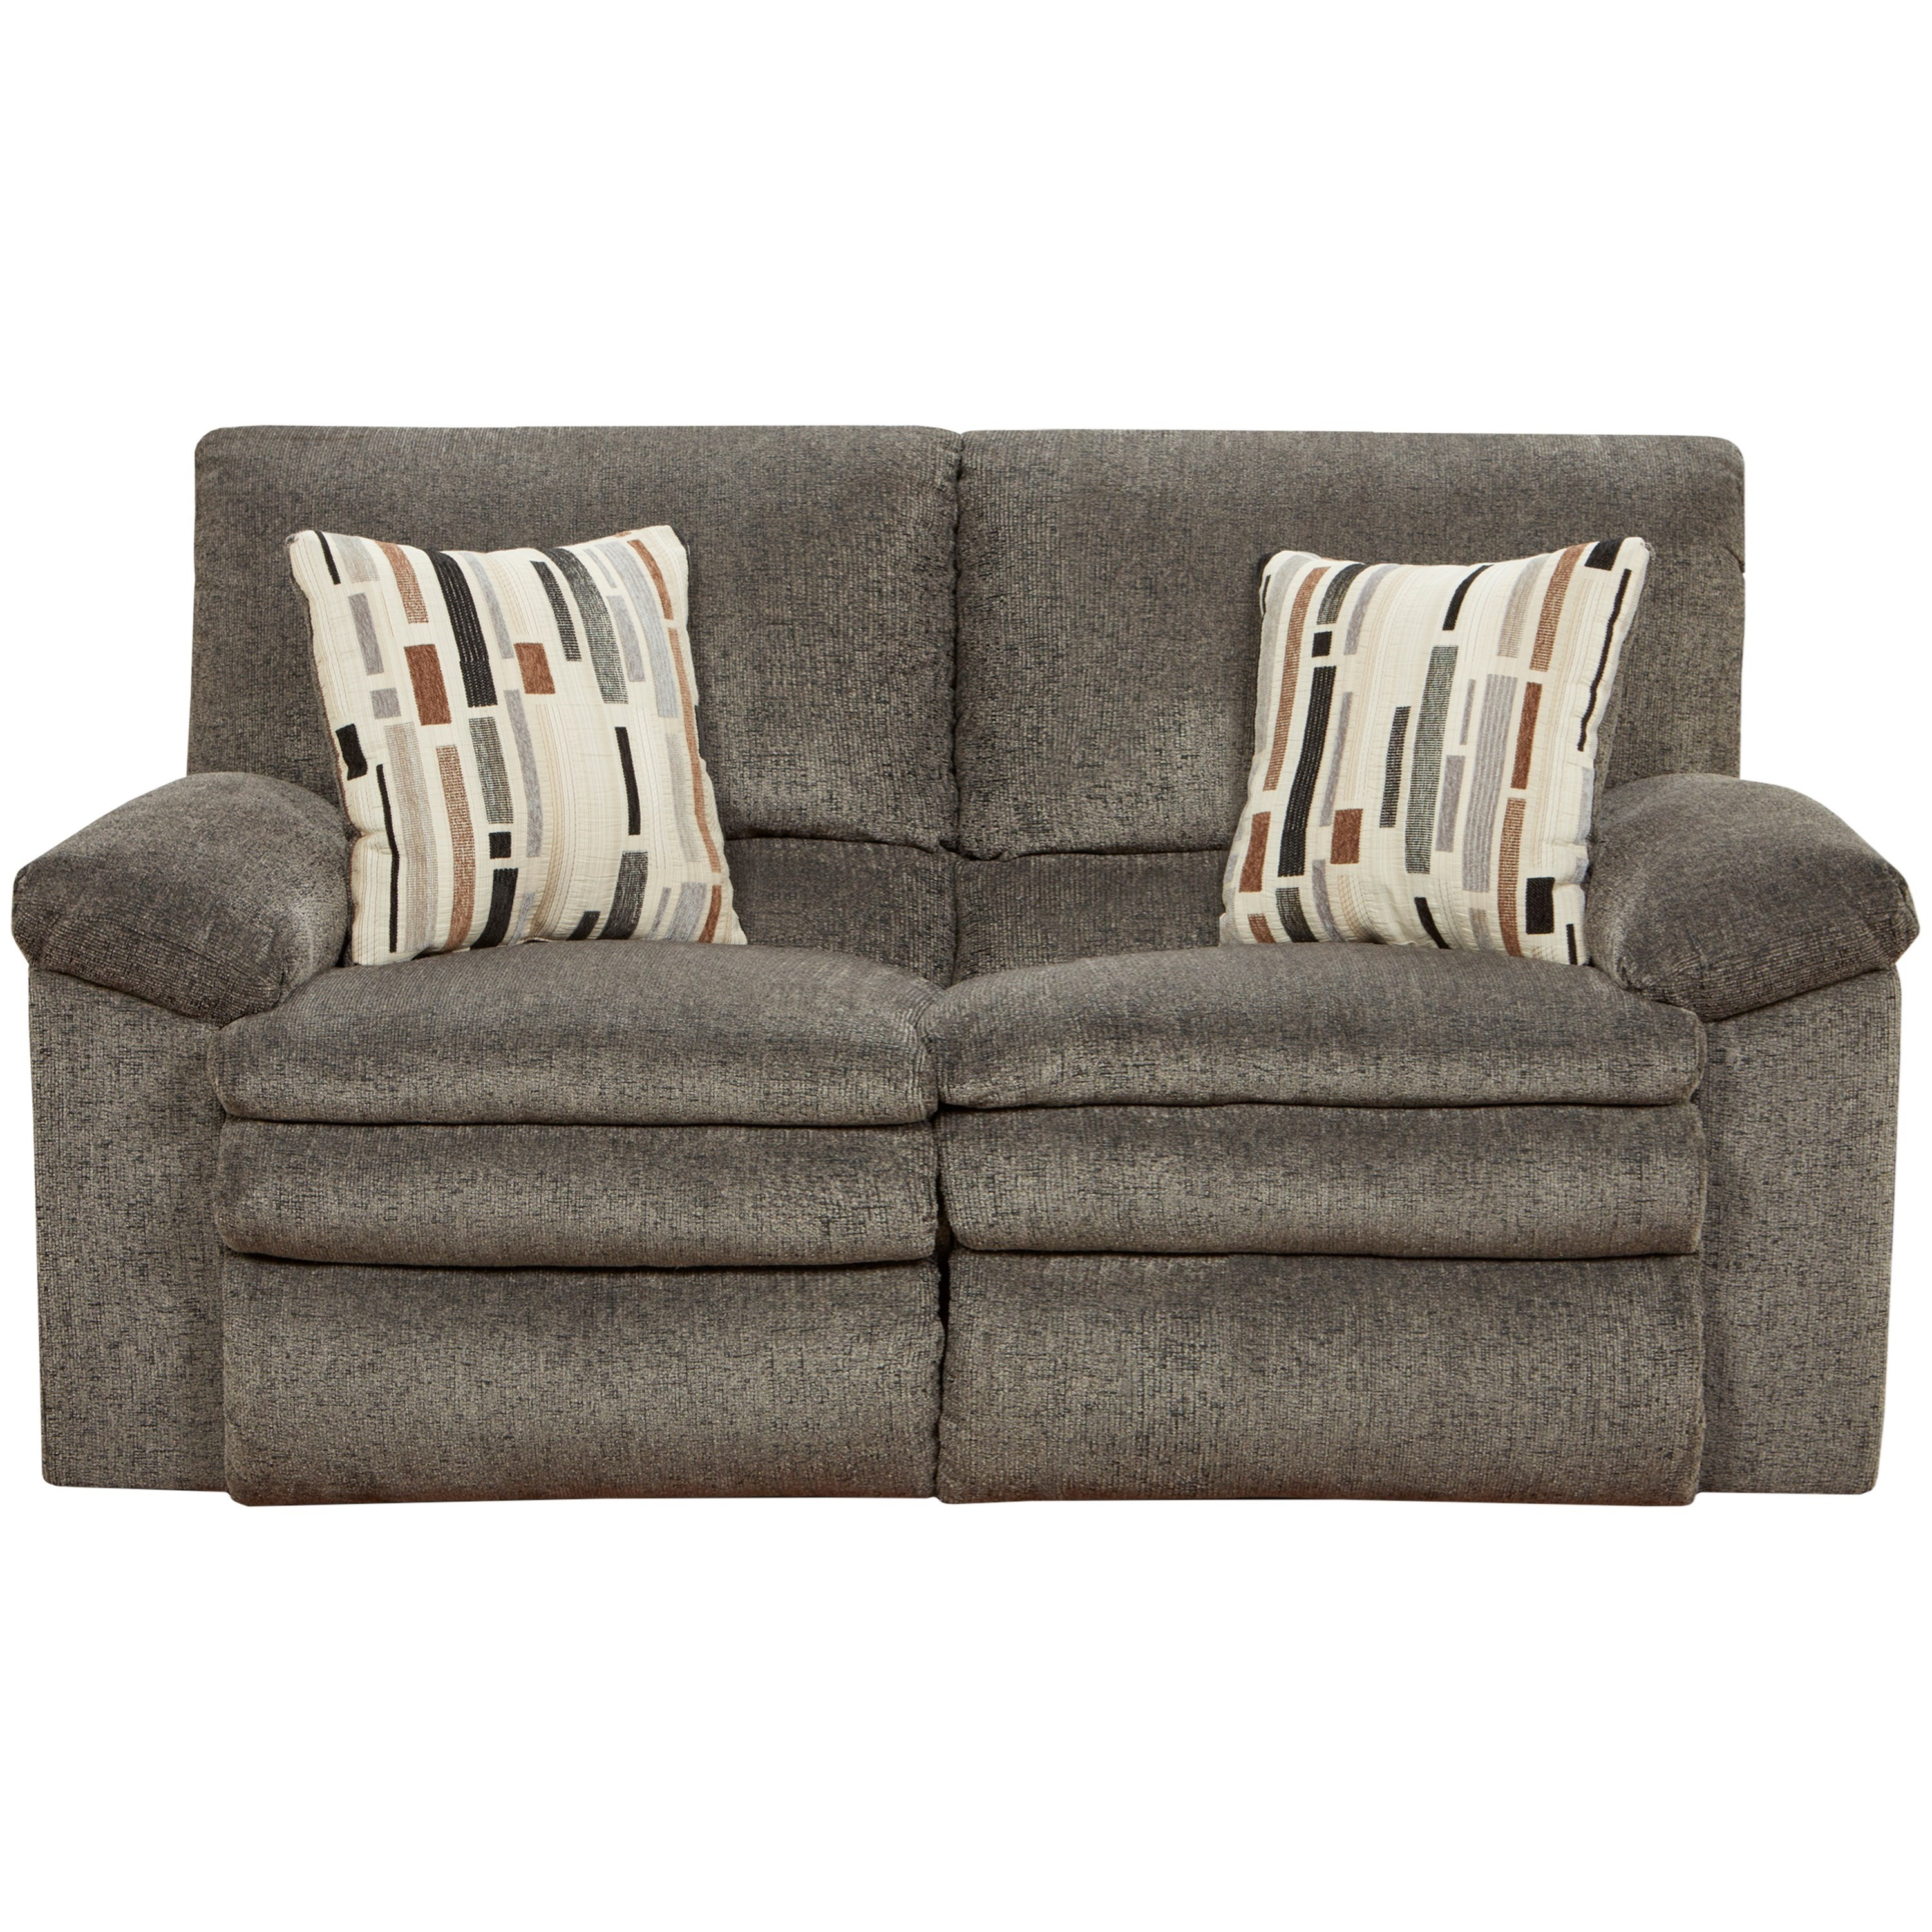 Tosh Reclining Loveseat by Catnapper at Standard Furniture